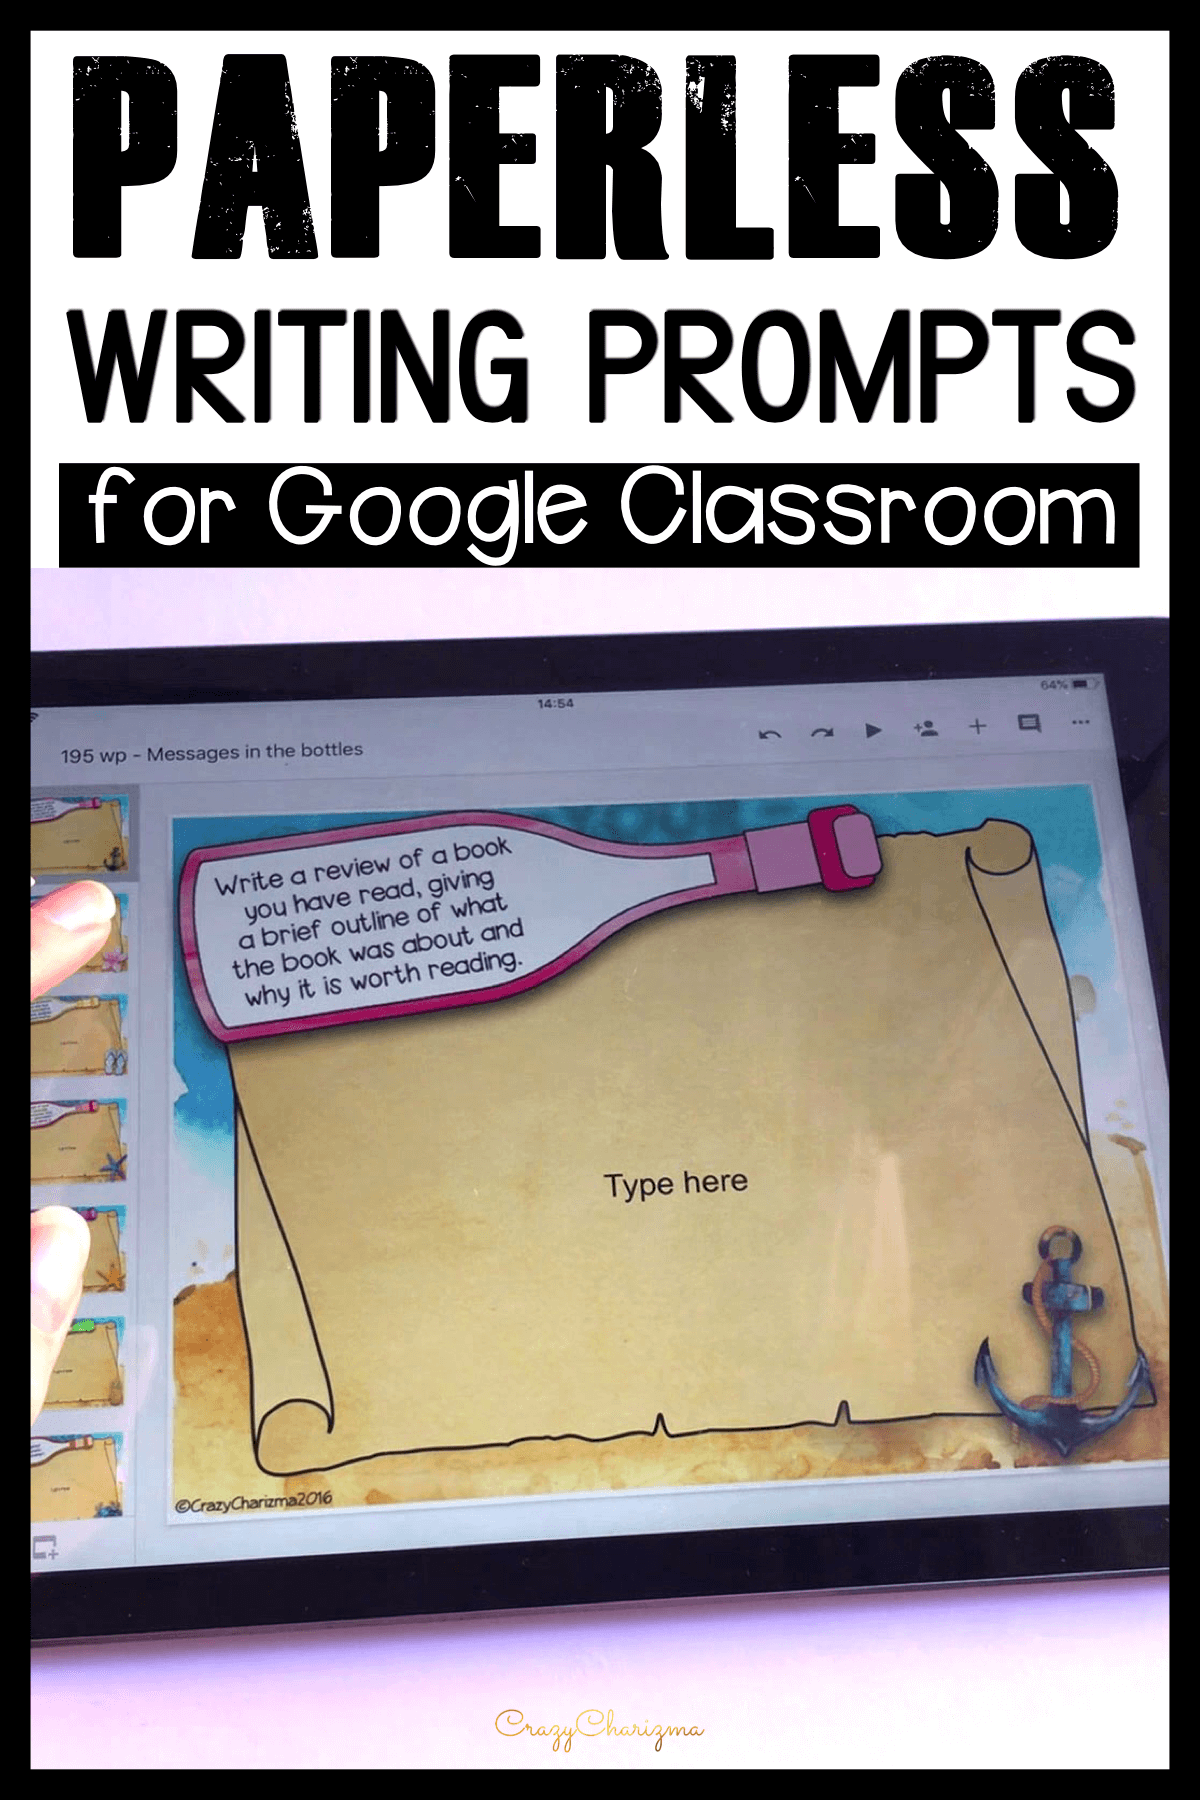 Need digital resources for quick student writing activities? Assign these prompts easily in Google Classroom, and let the students start writing right away! Monitor their progress, answer questions and offer feedback as they write!